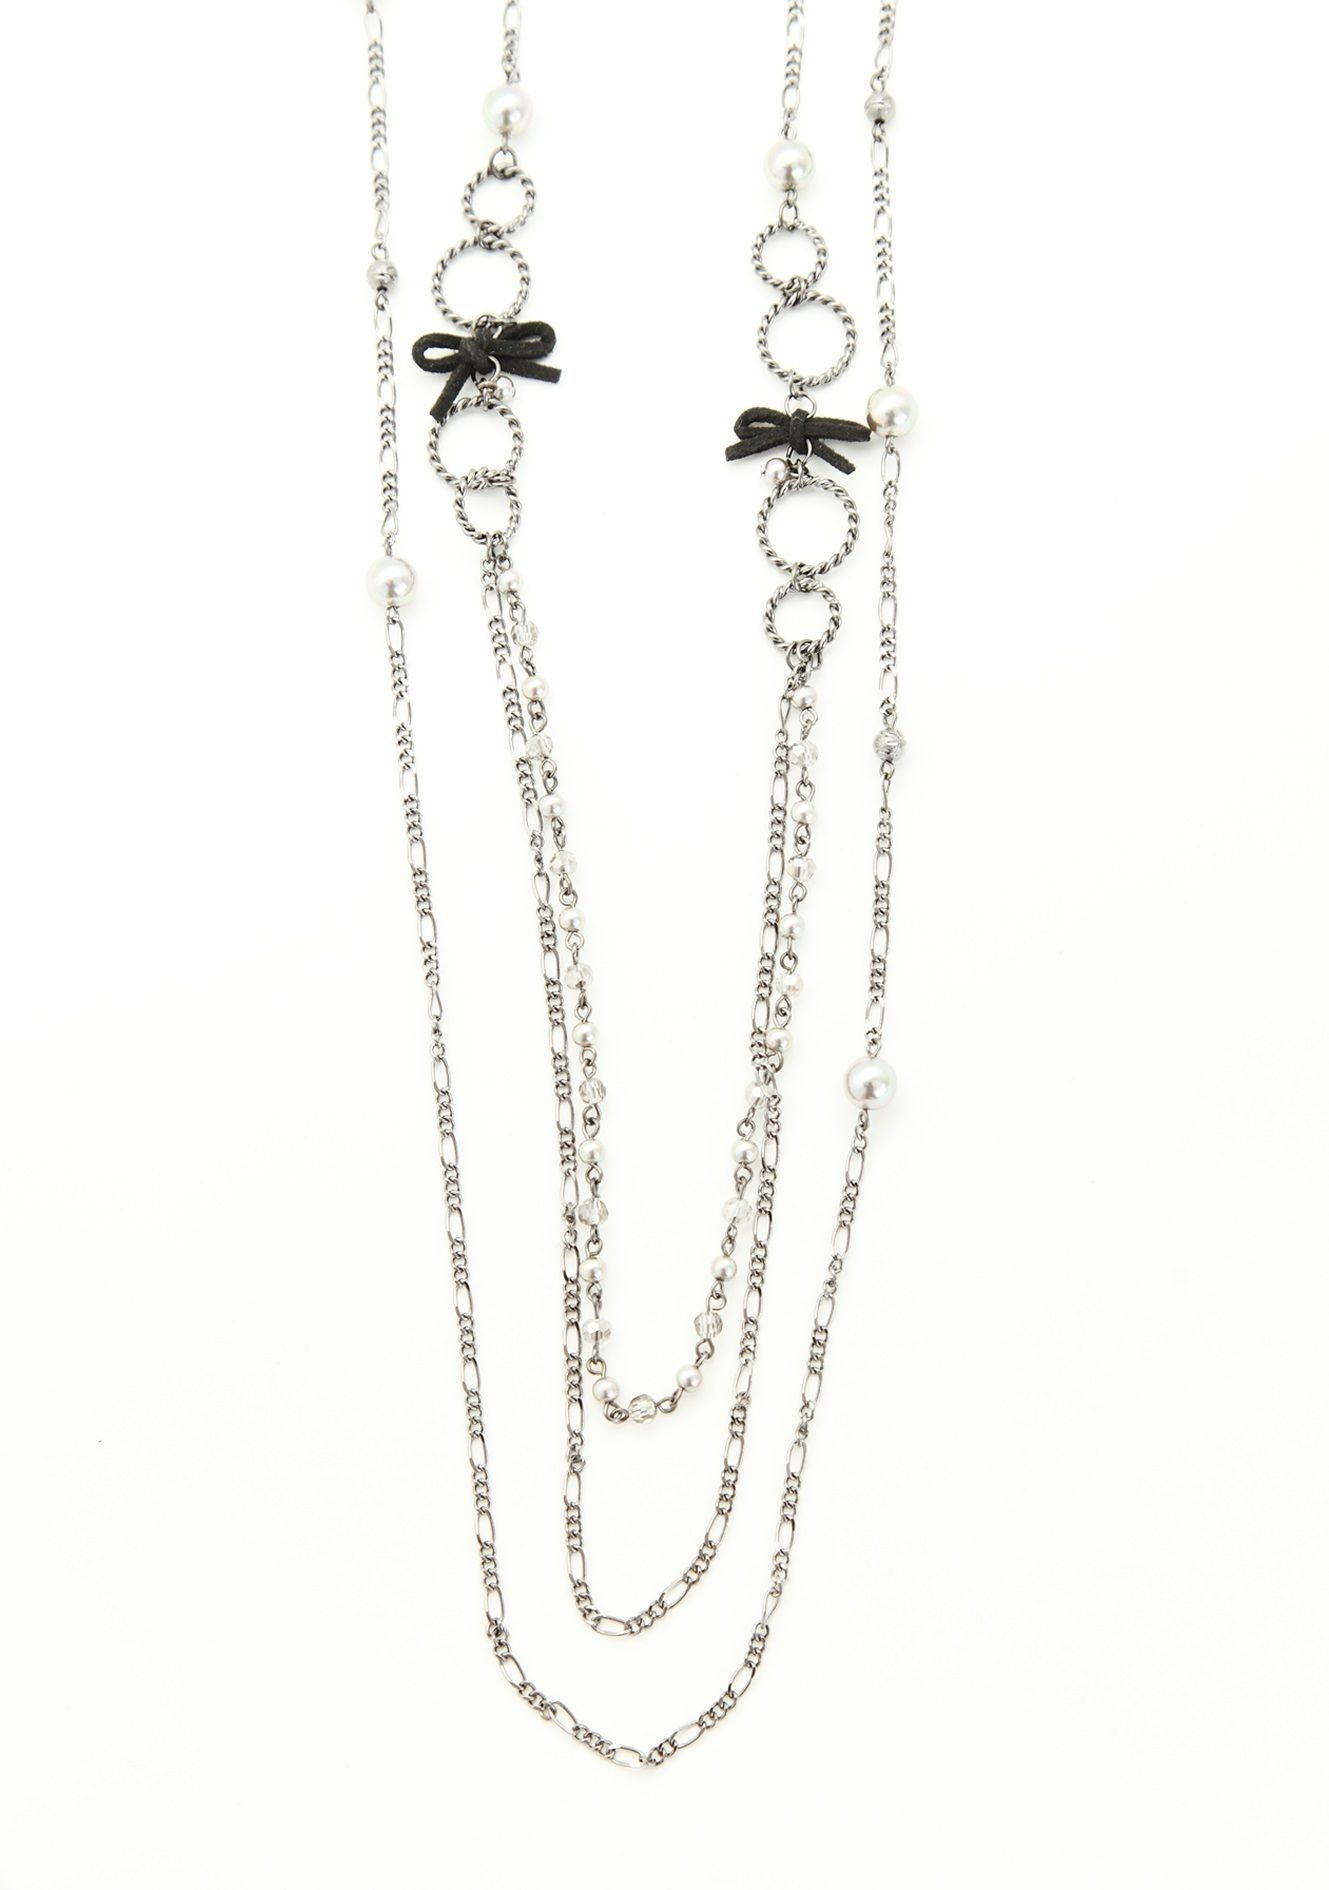 axes femme online shop   ribbon × beads necklace